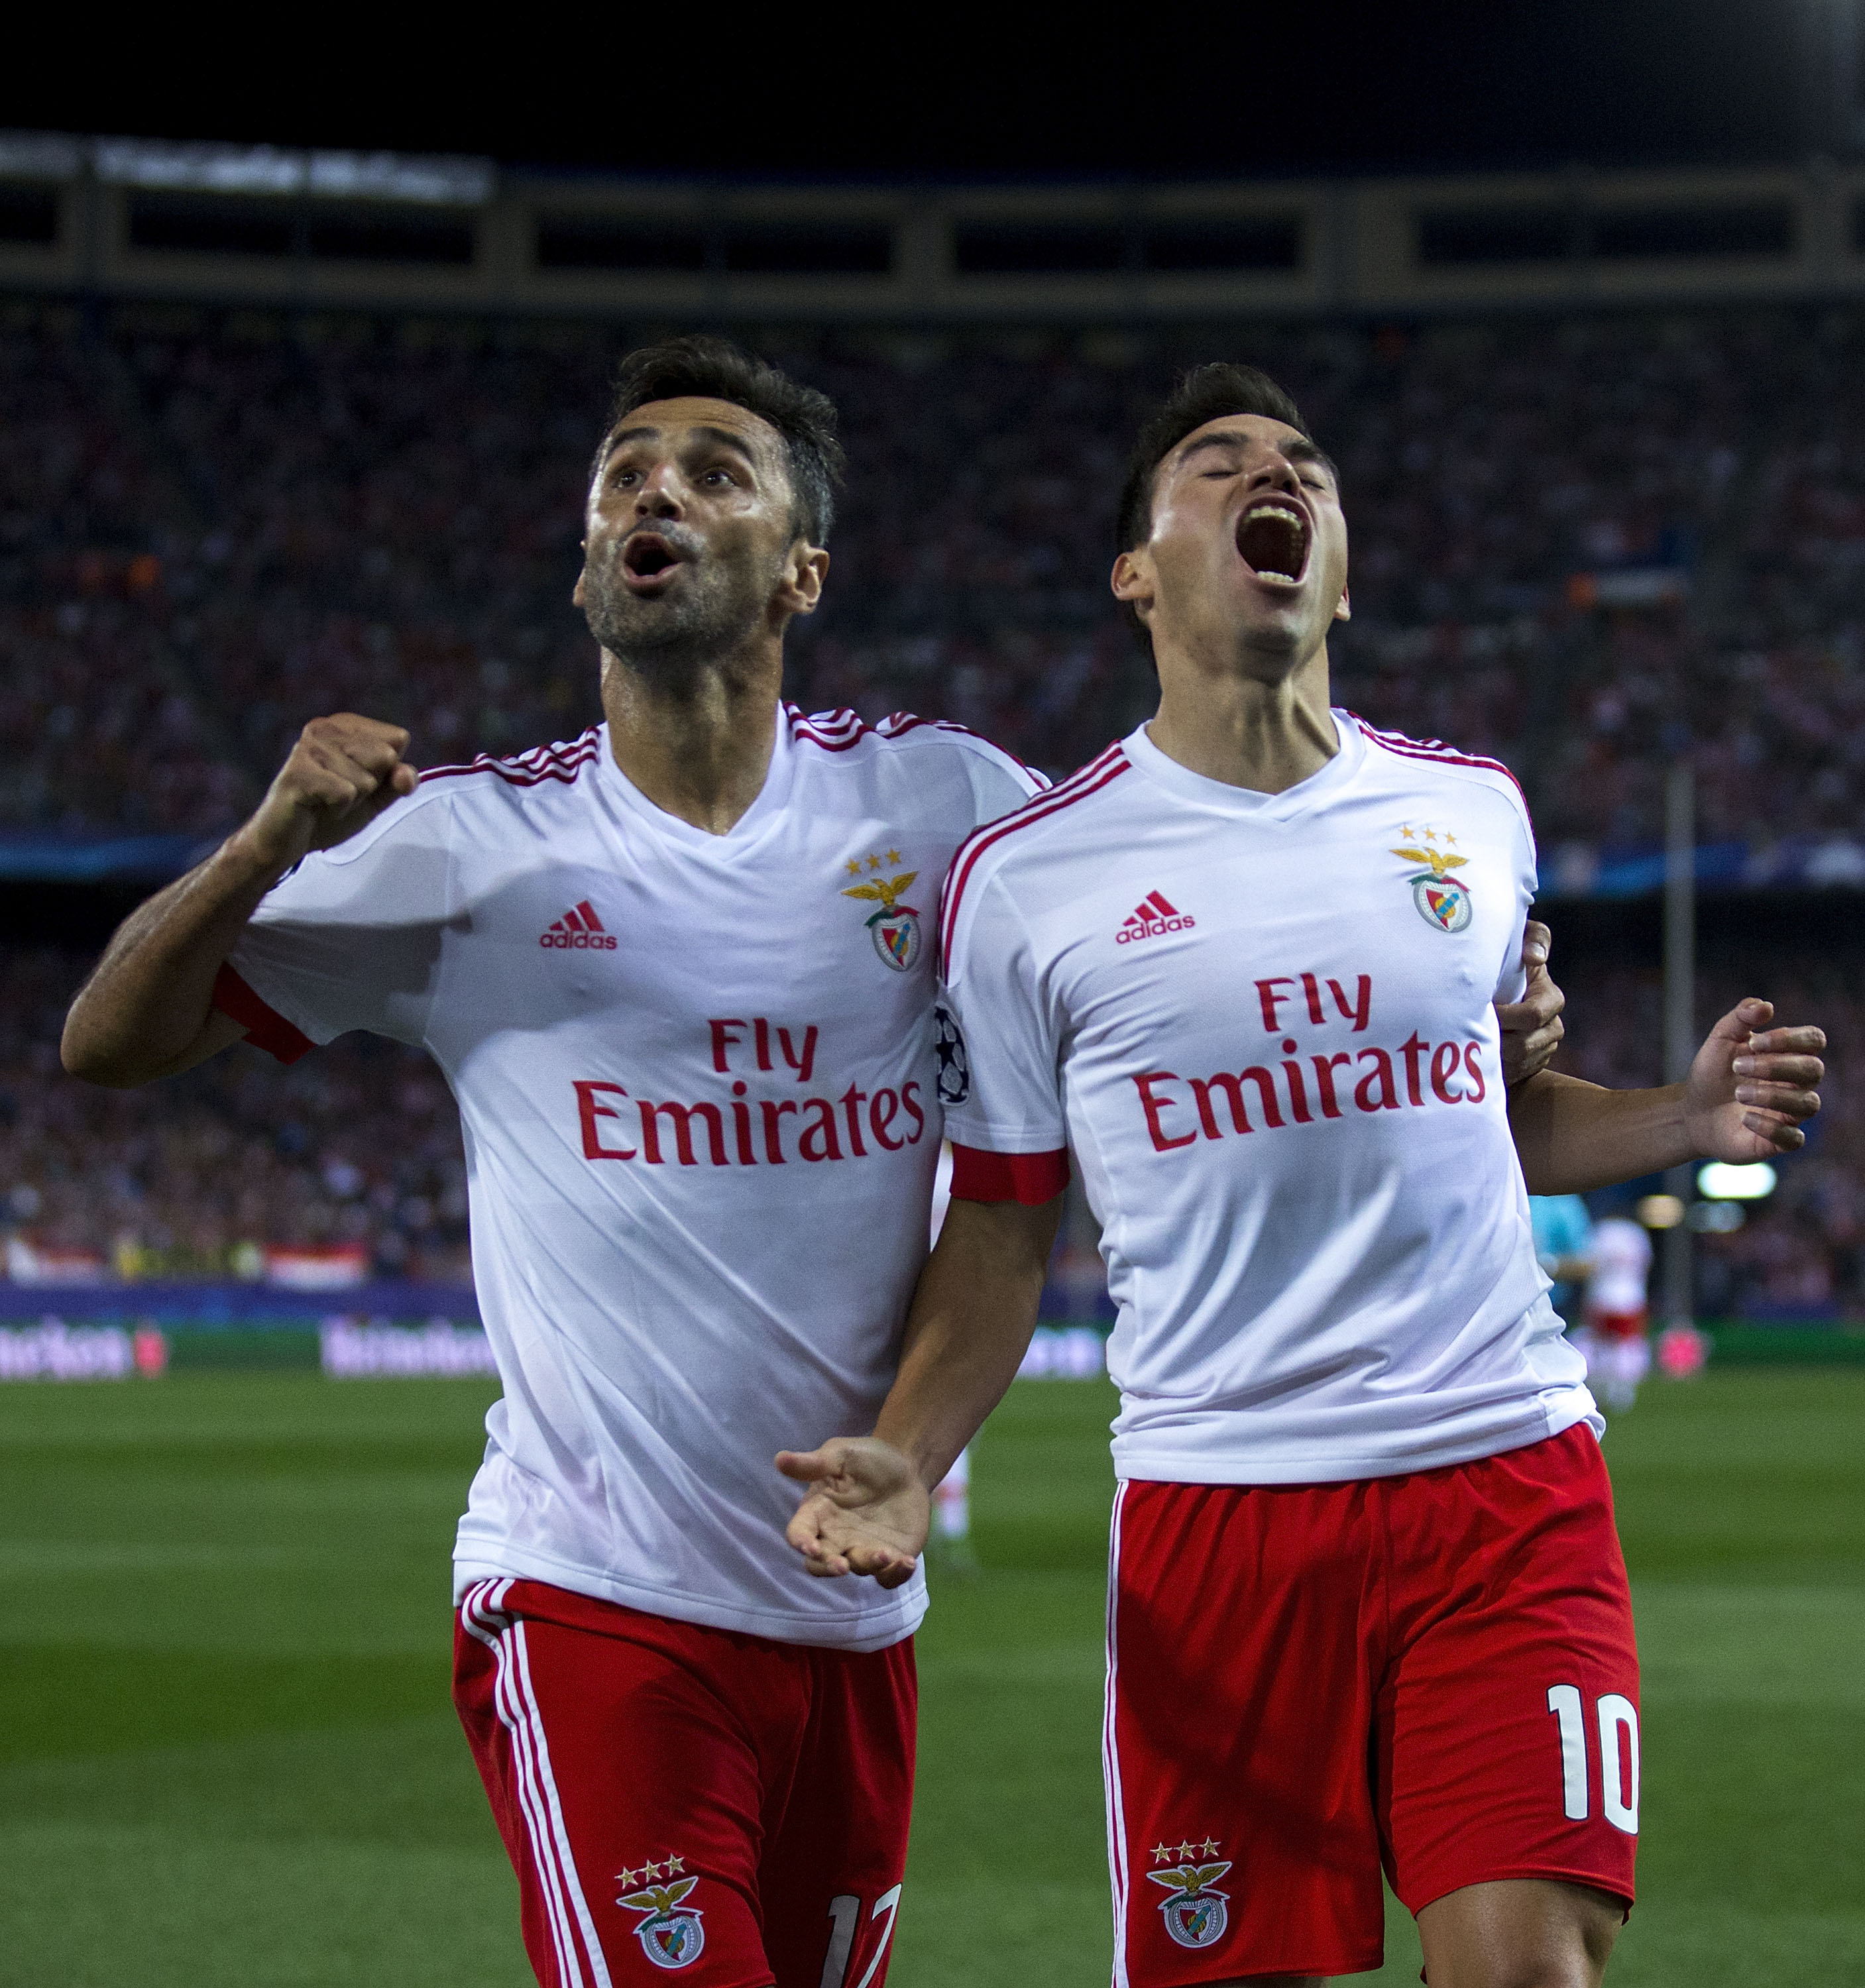 Benfica are playing well, in part thanks to Gaitan and Jonas.